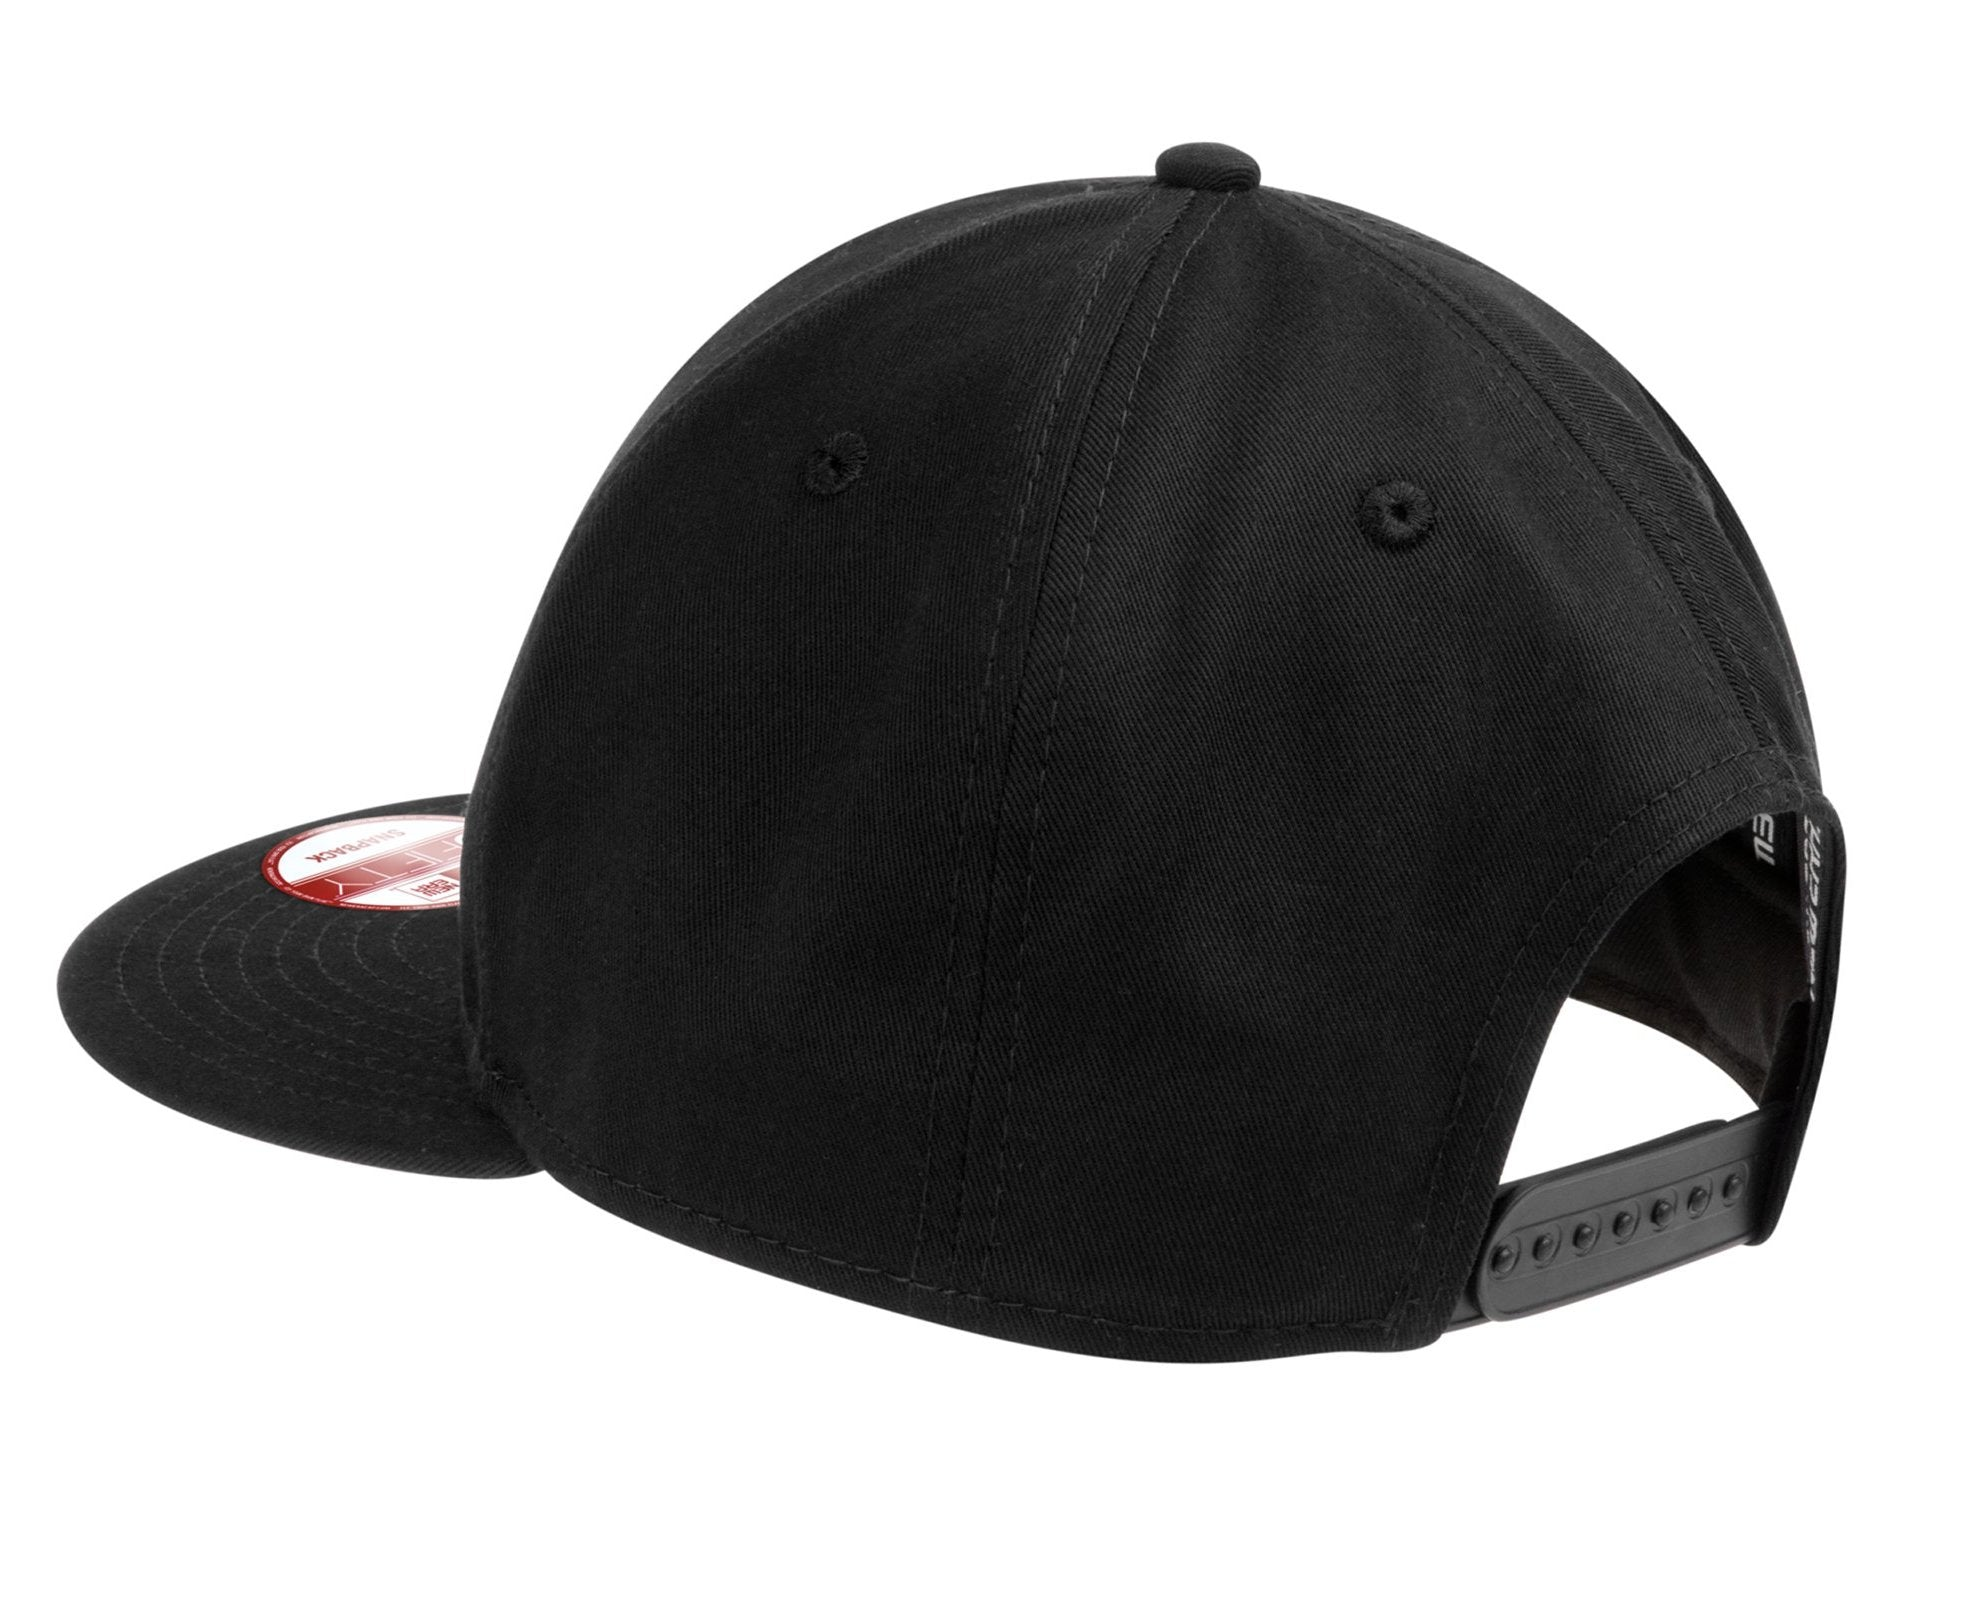 Fi Classic New Era Snap Back